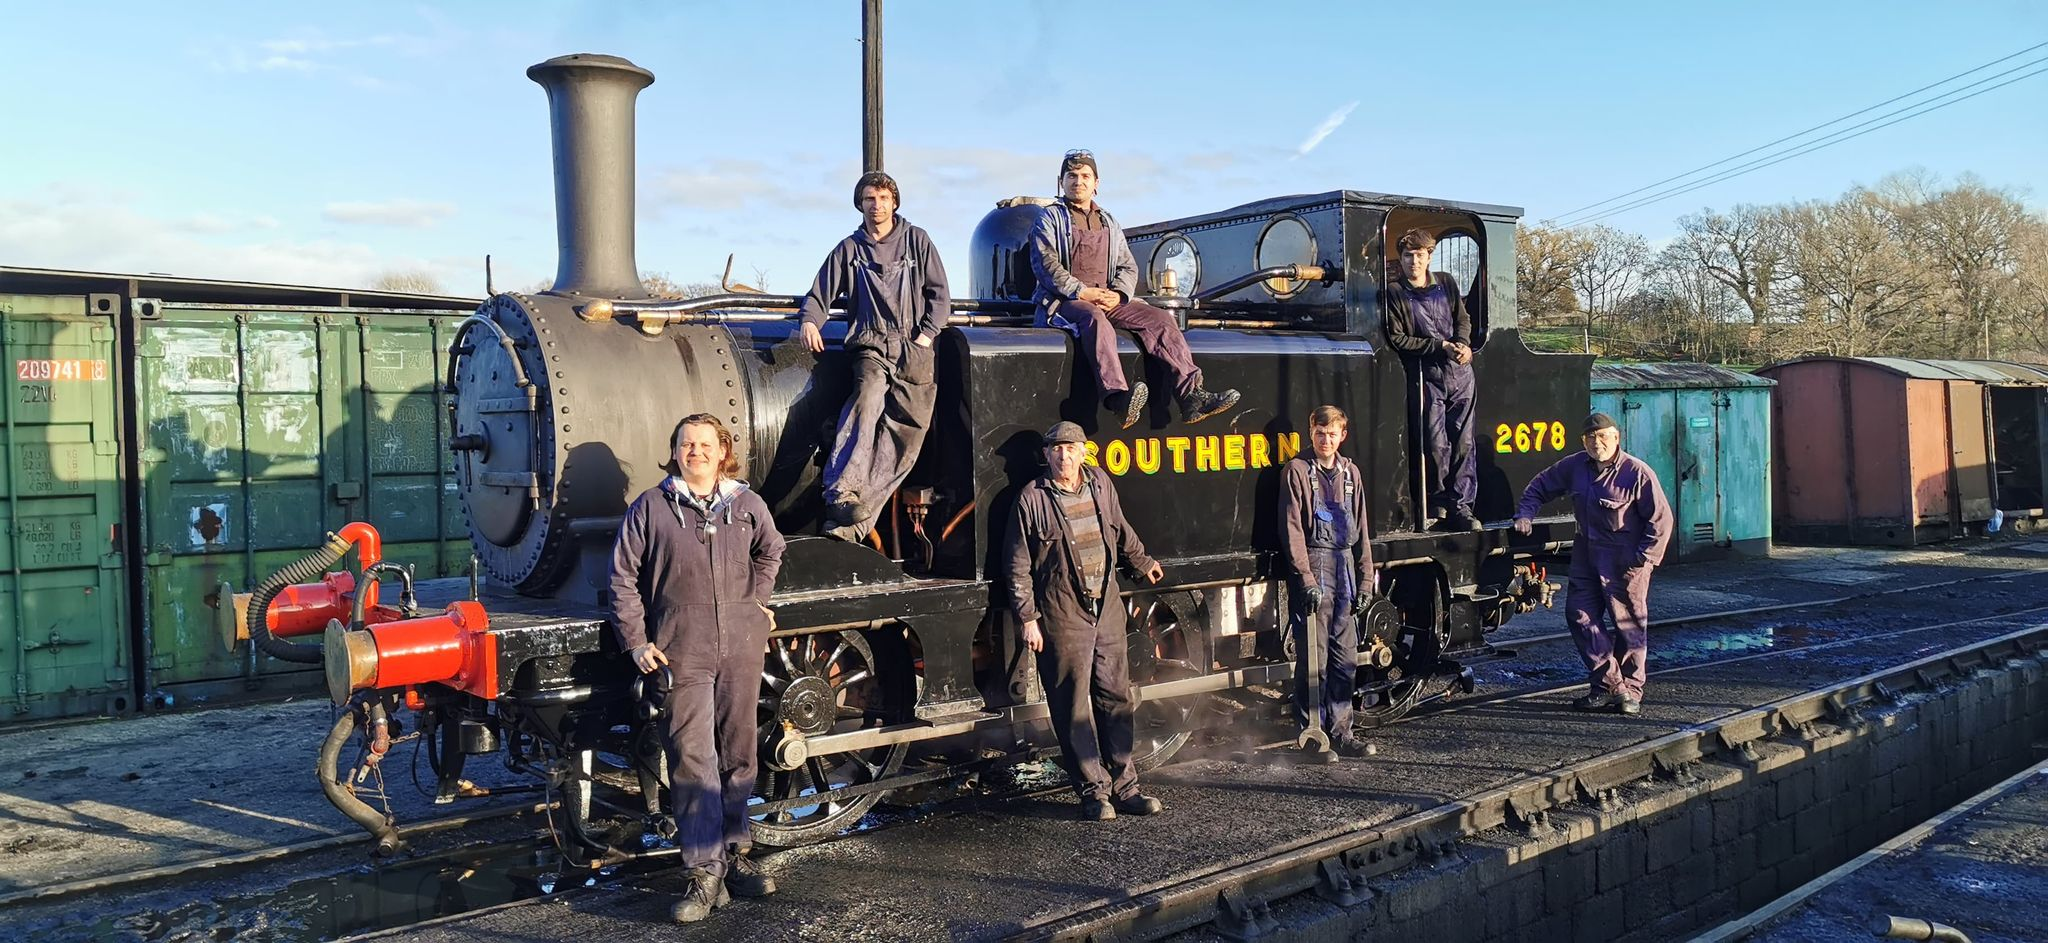 people and steam engine